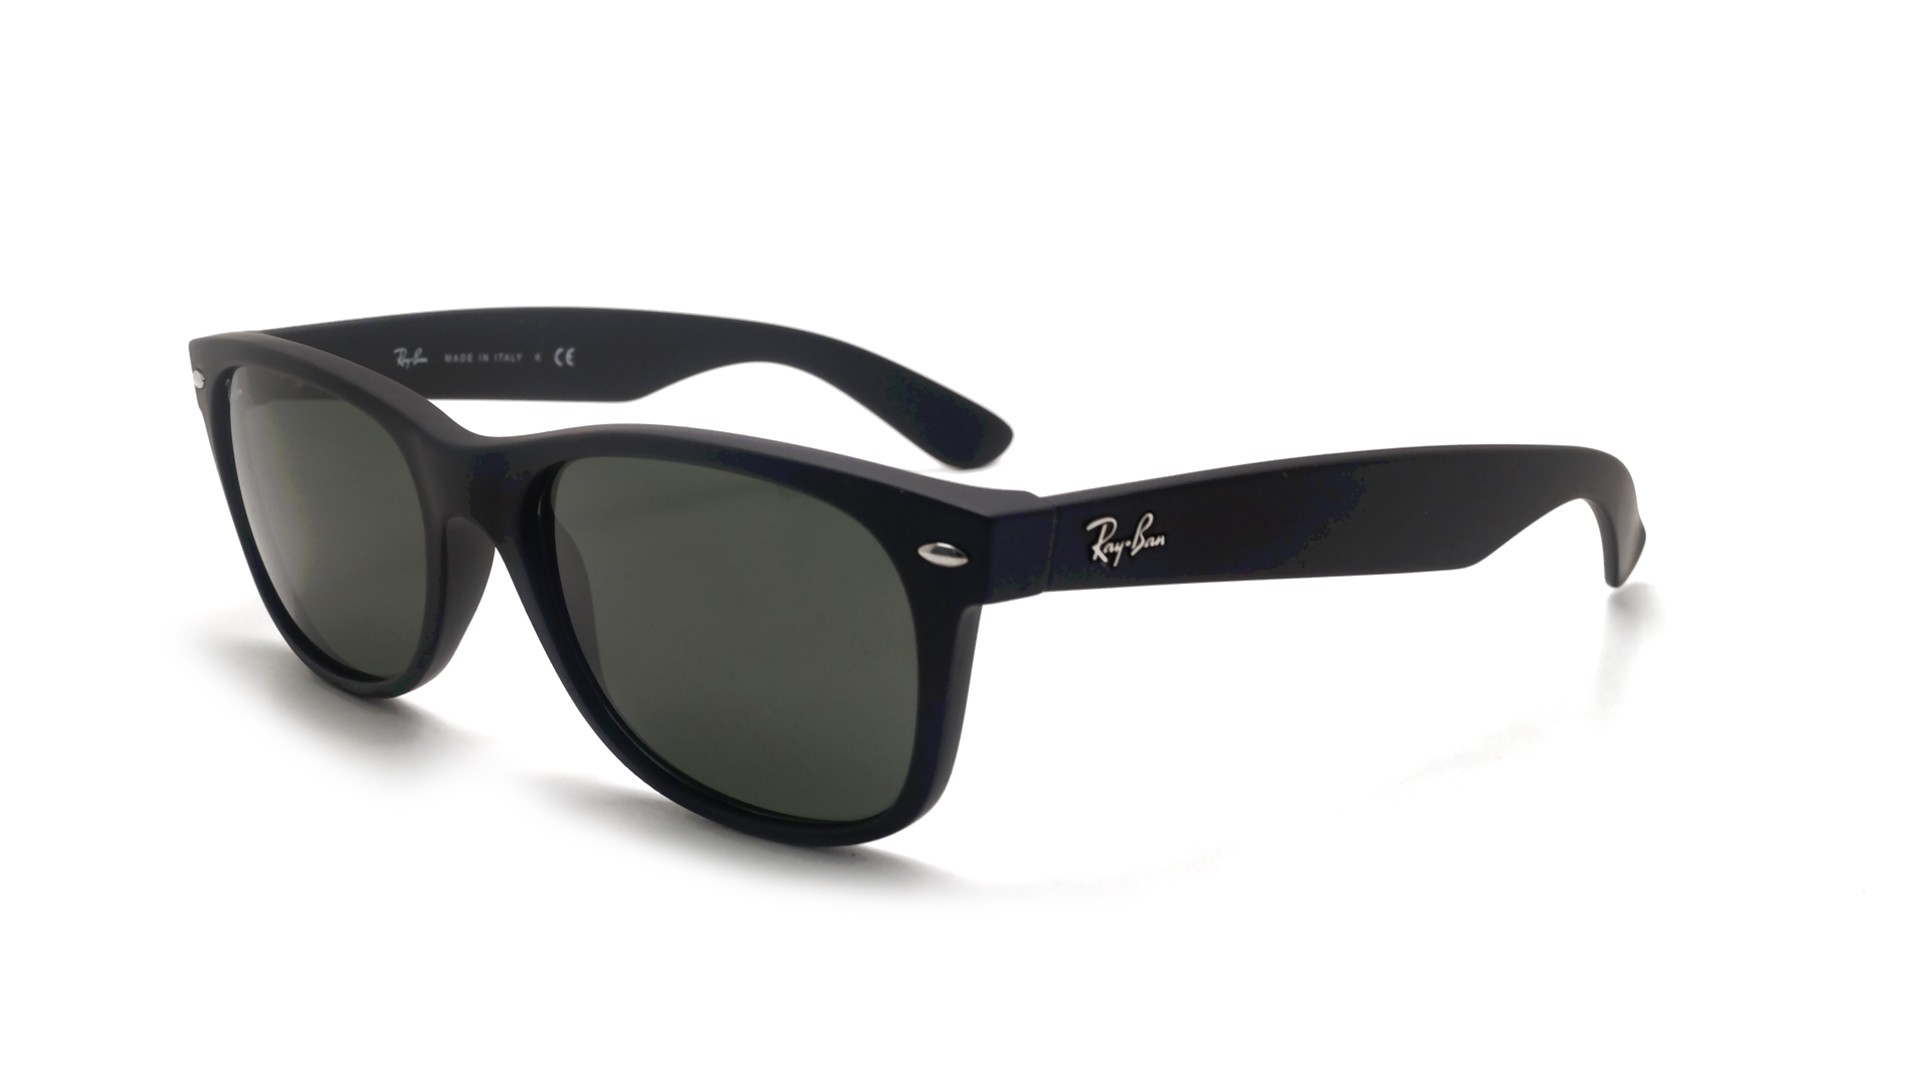 c71b4bf4366 Sunglasses Ray-Ban New Wayfarer Black Matte RB2132 622 52-18 Medium